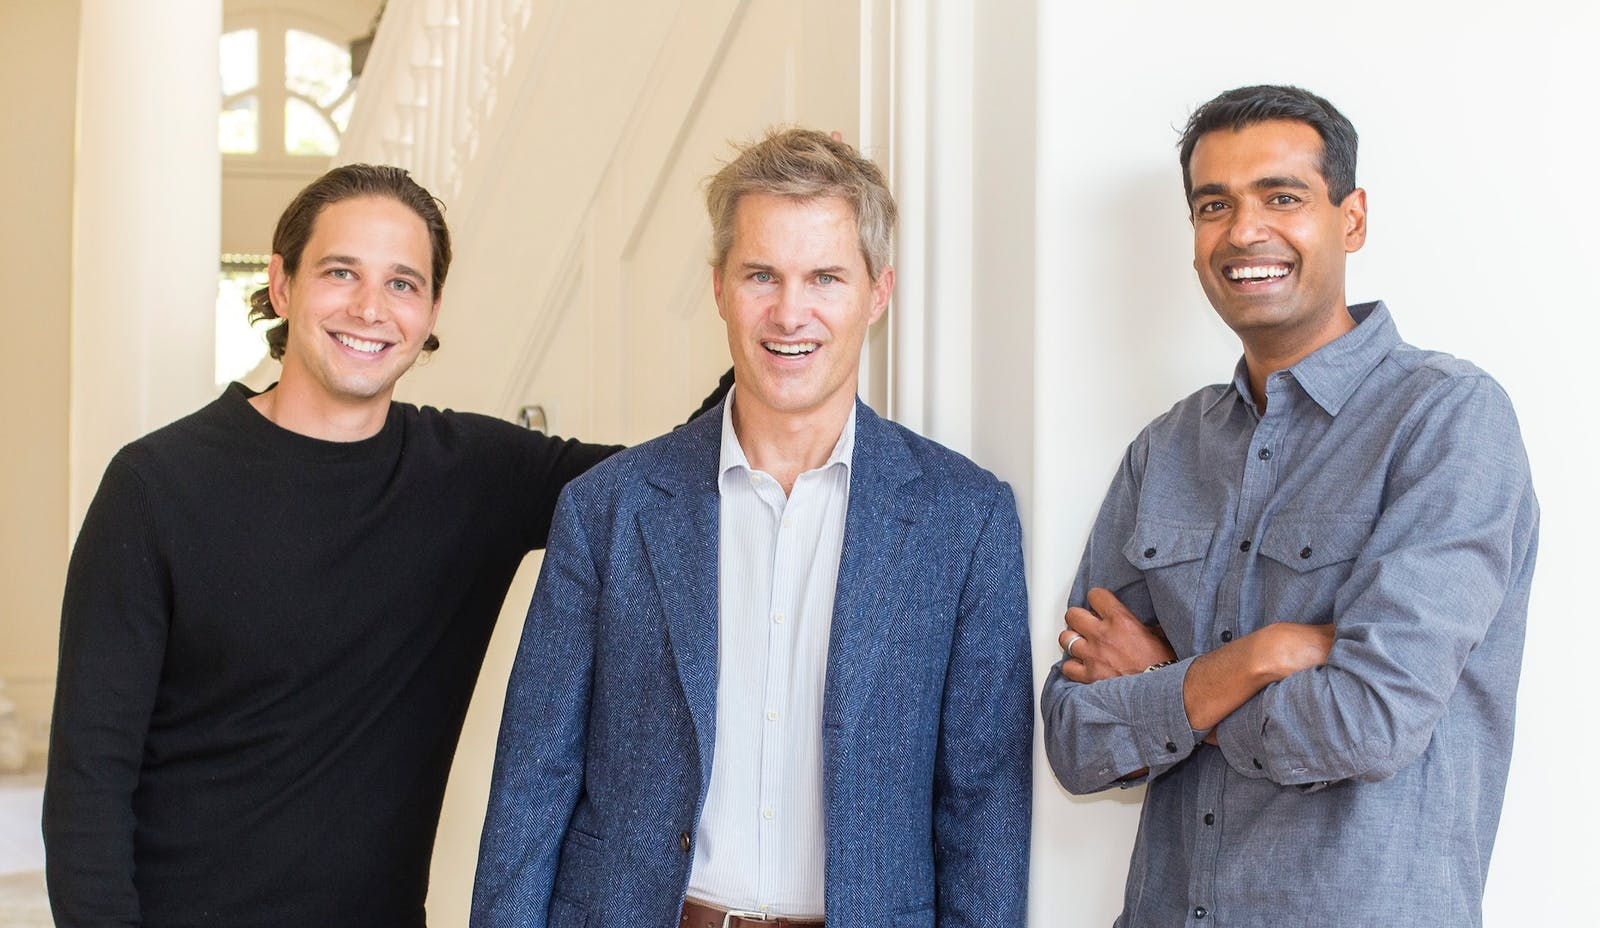 A-Star Partners co-founders and general partners  Bennett Siegel, Kevin Hartz and Gautam Gupta. Source: A-Star Partners